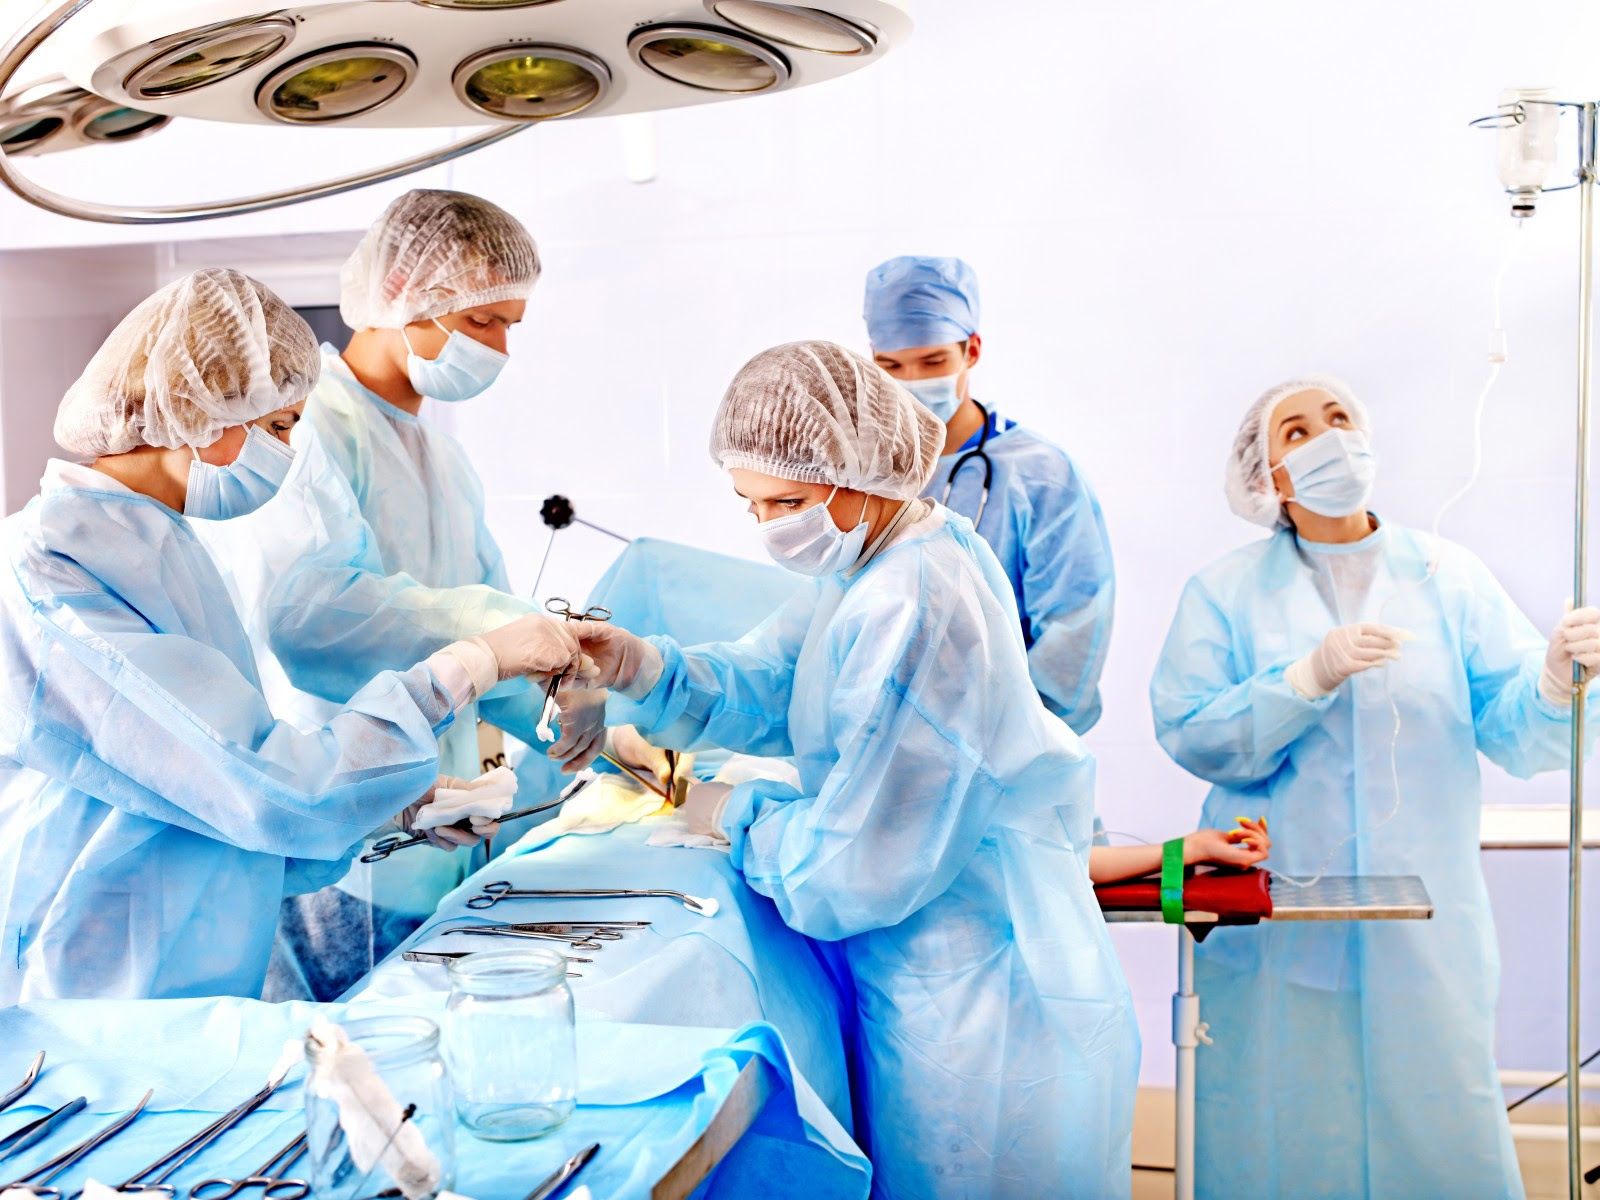 Surgeon Degree Programs – Information and Resources